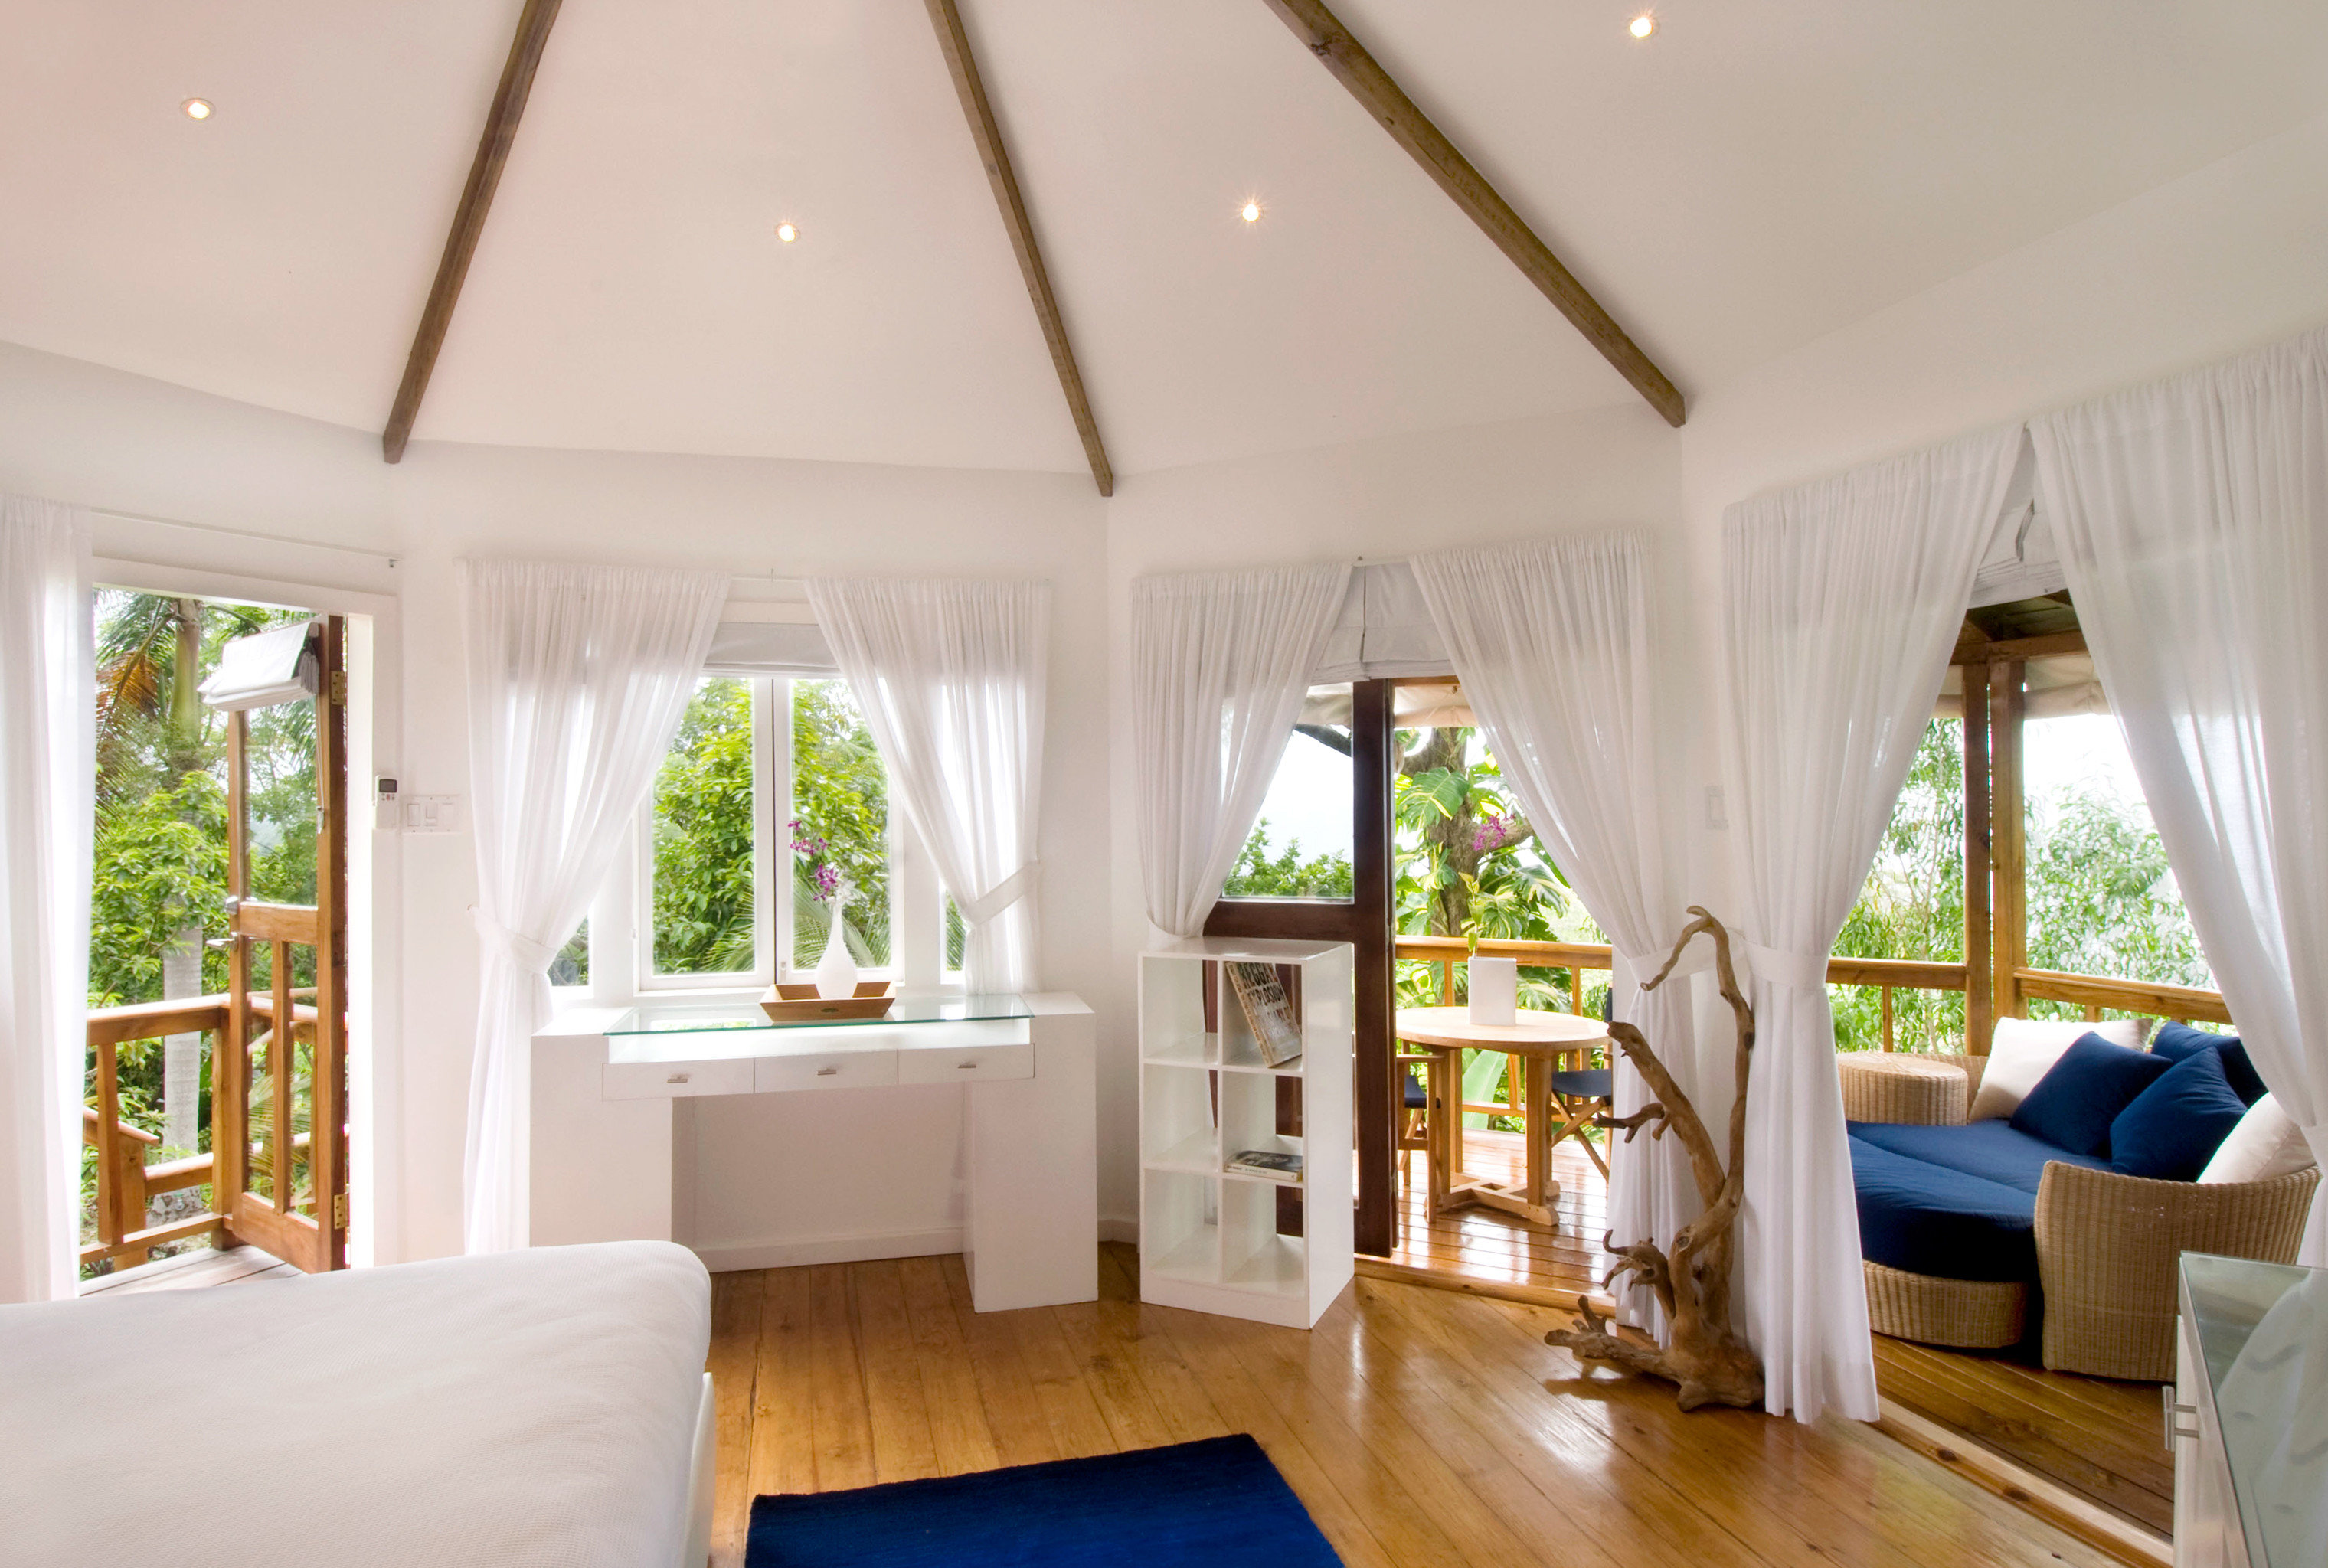 Bedroom Boutique Scenic views Suite Tropical property living room Resort home Villa cottage farmhouse